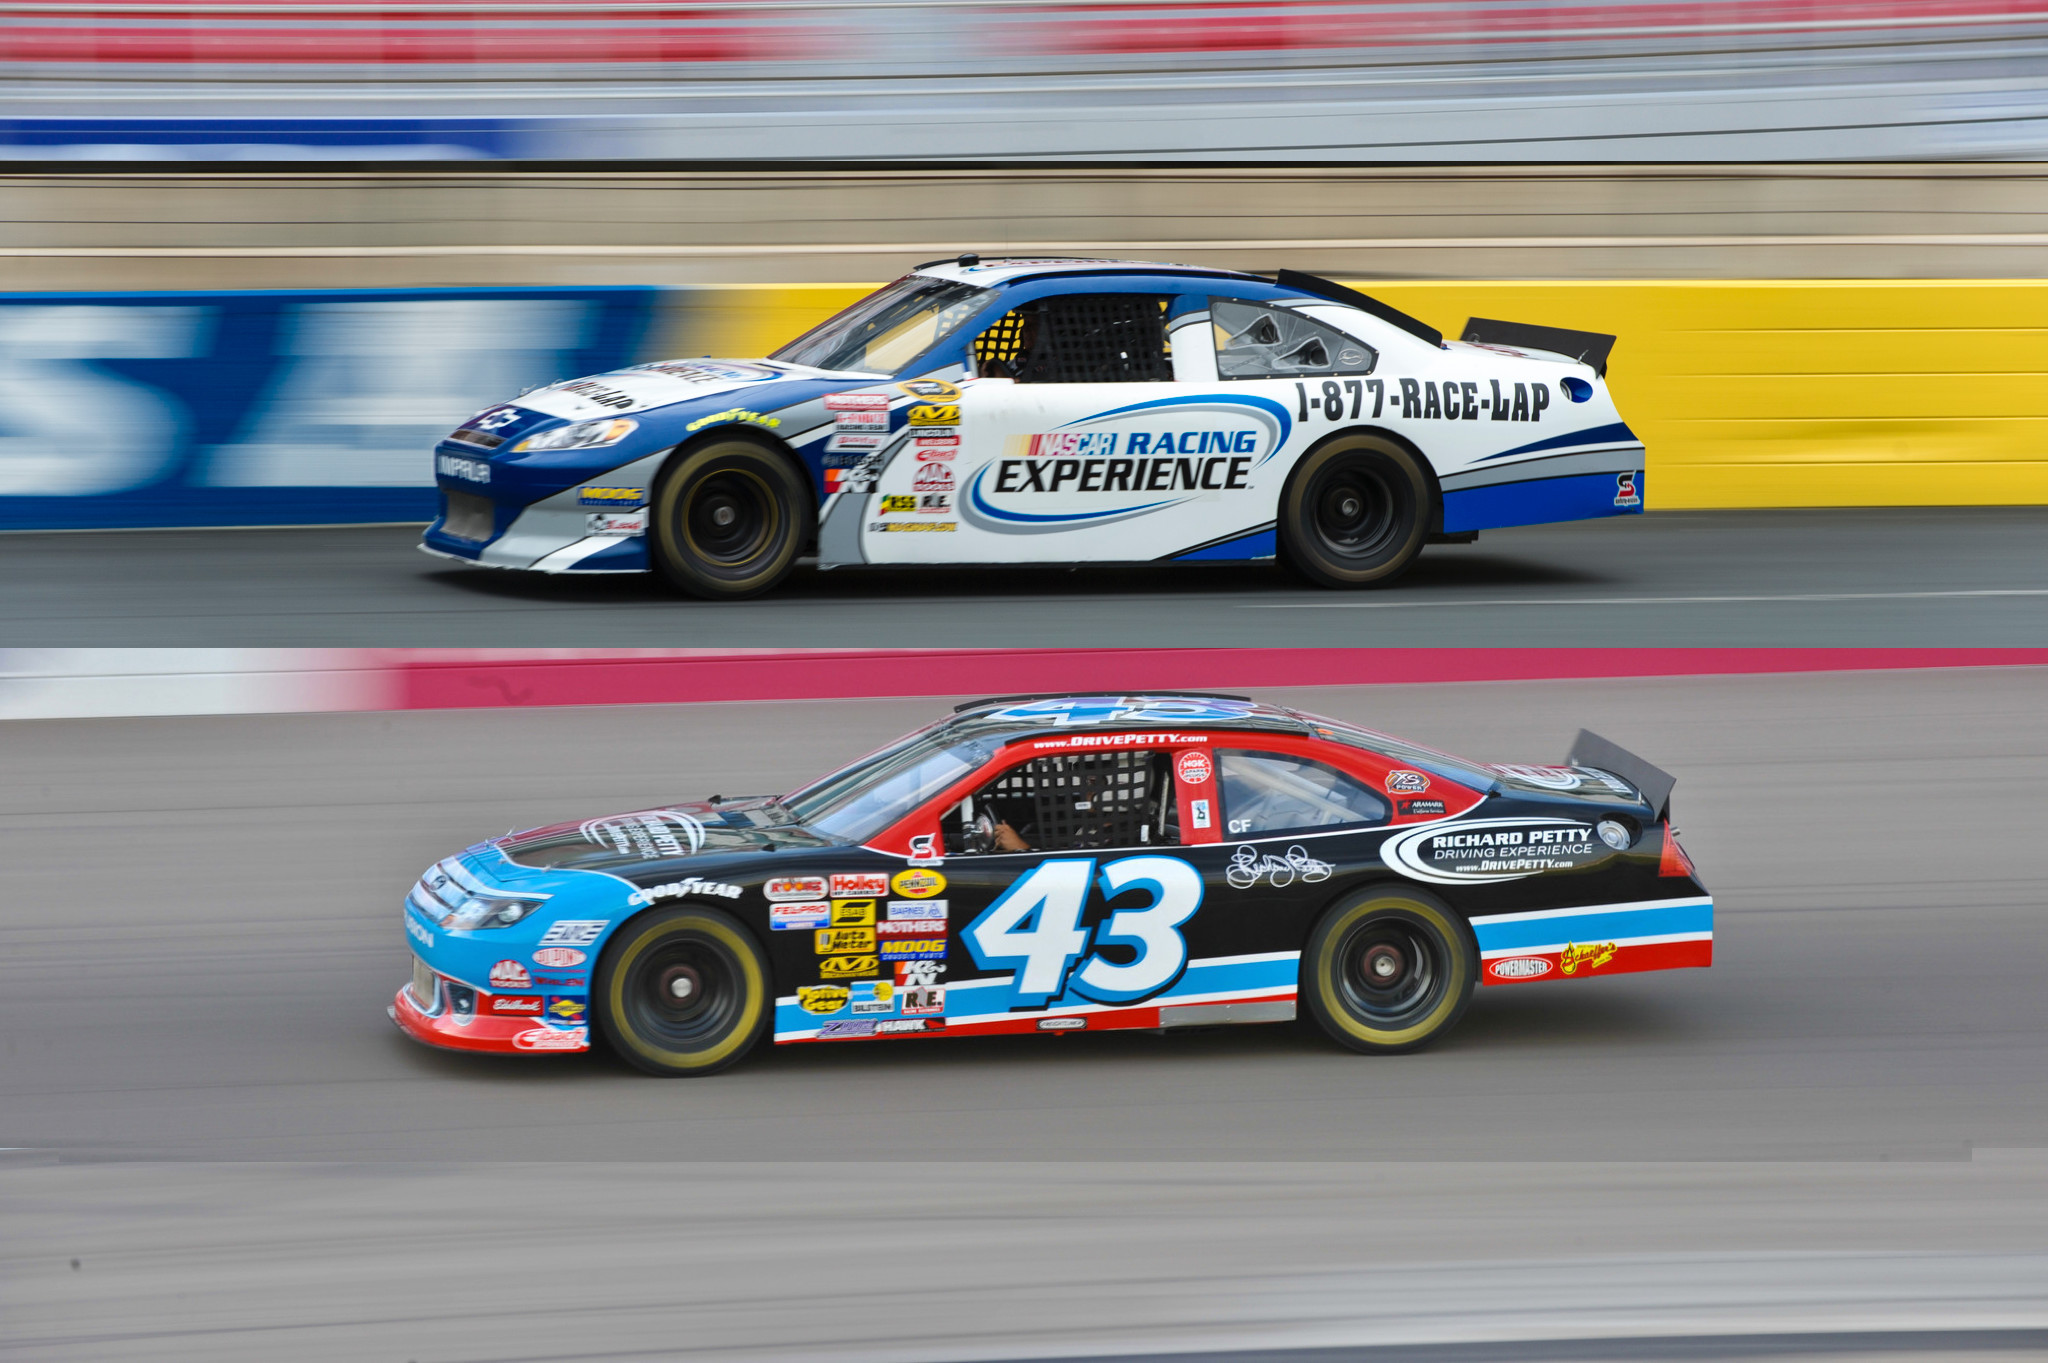 Richard Petty Driving Experience Las Vegas Motor Speedway 2 ...